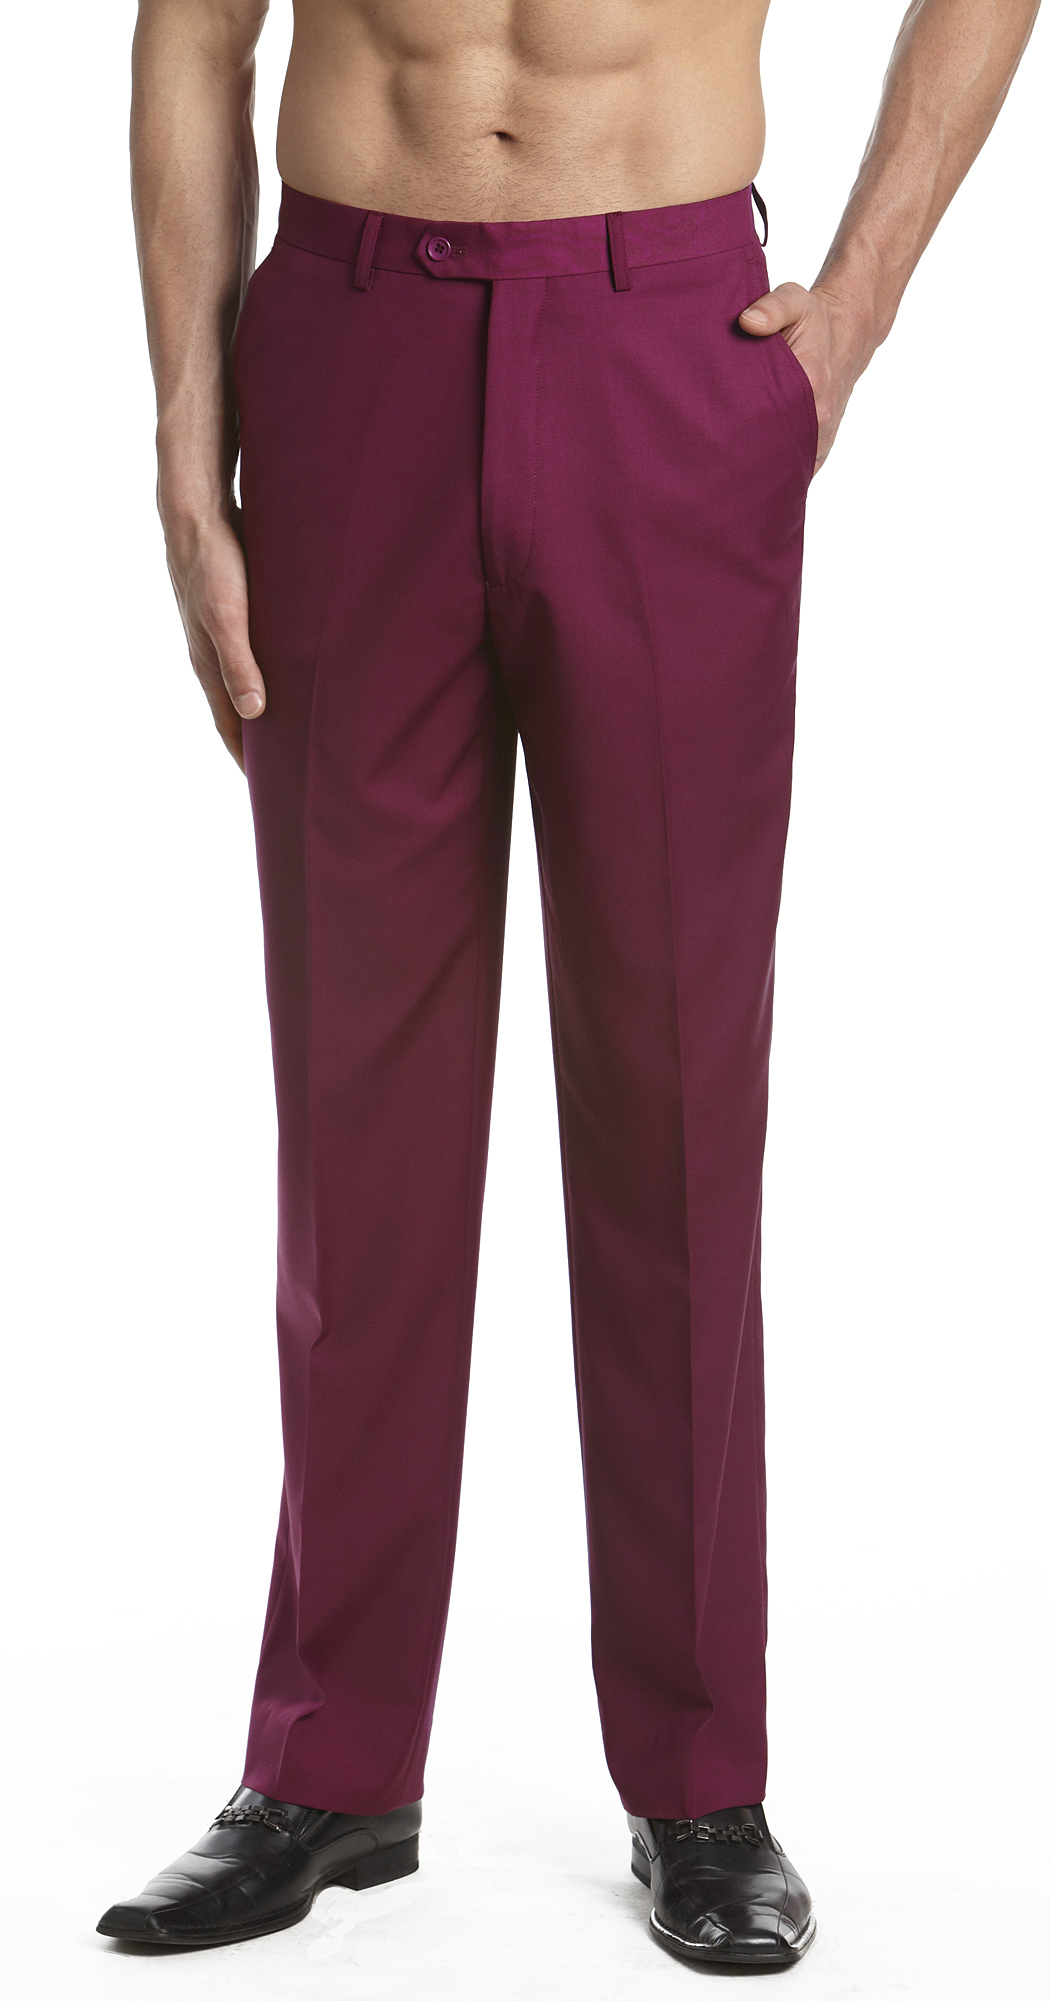 How to Choose Colored Dress Pants for Men If you want to get the perfect colored dress pants for men with correct finishing touch, you have to know that finish depends on six different factors. These significant factors are pleats, pockets, closures, cuffs, lining and fit.